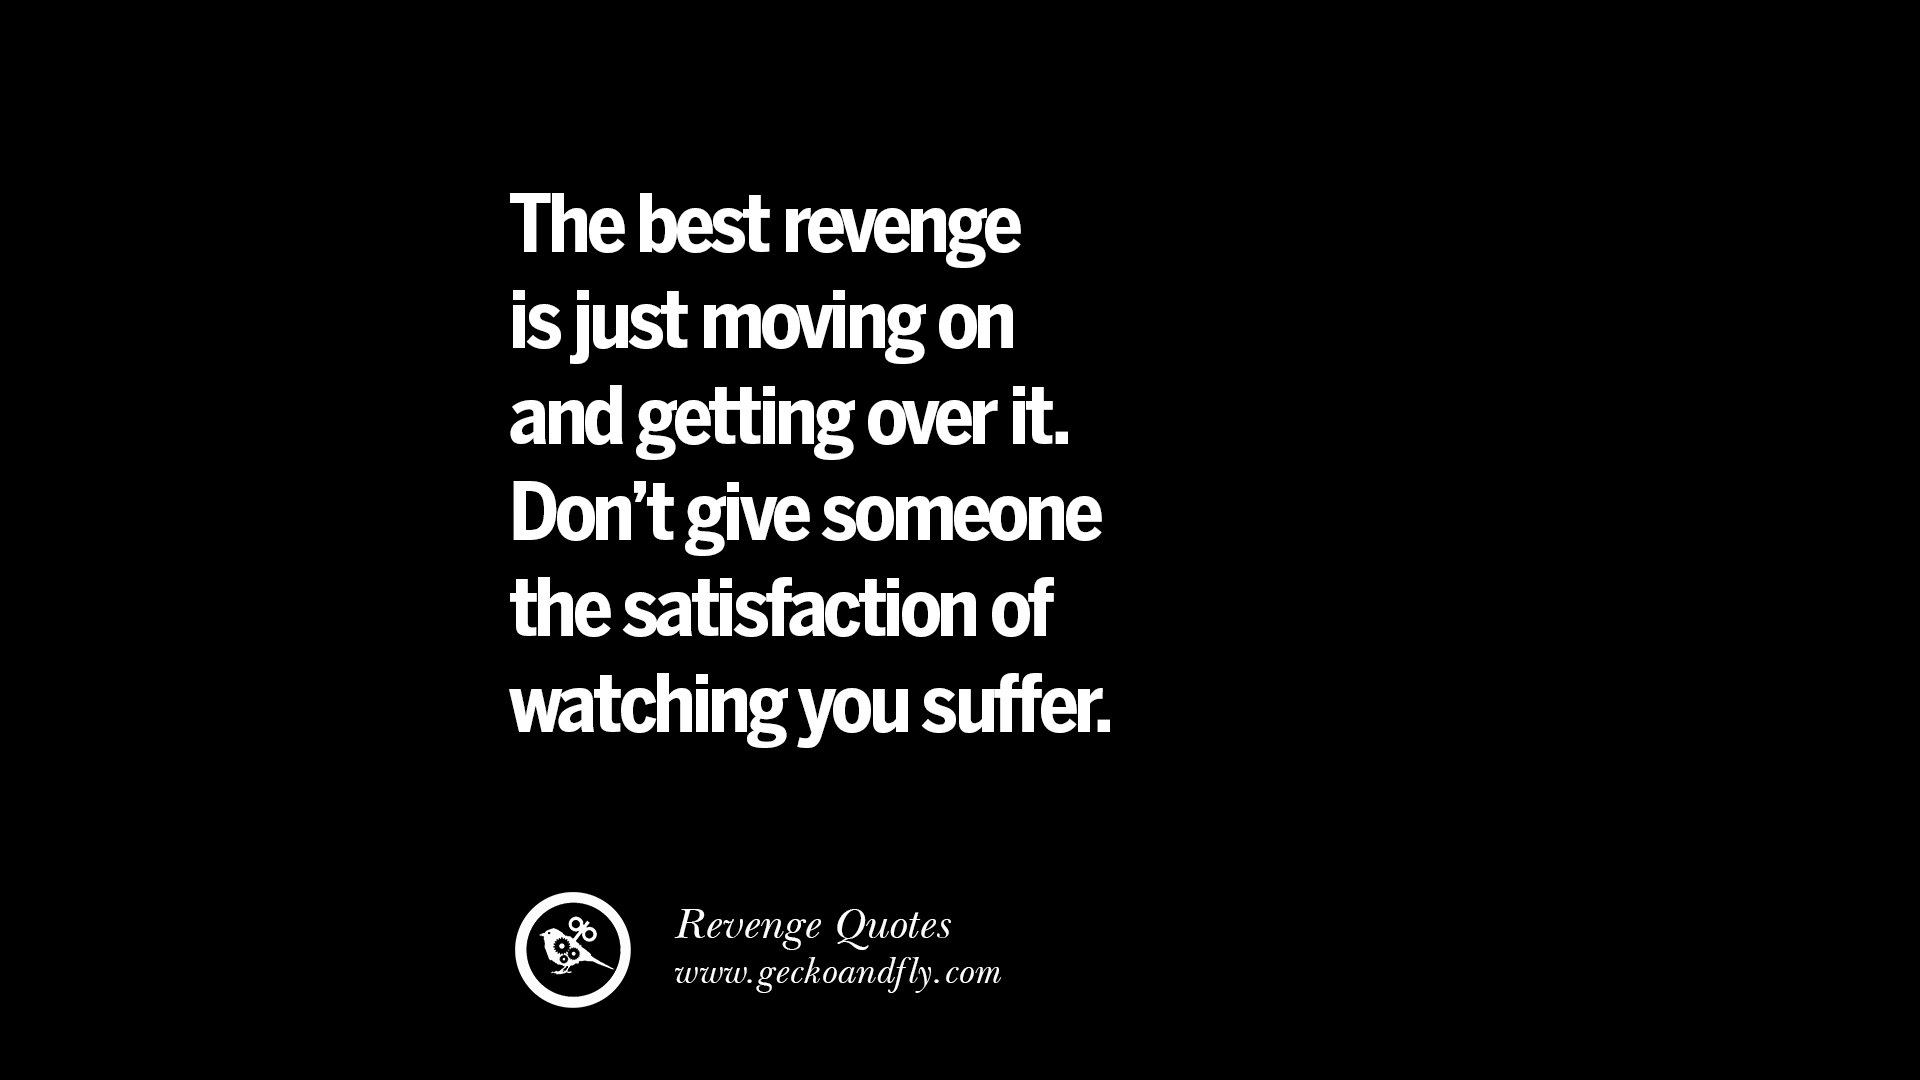 20 Best Quotes On Breakup Revenge And Getting Even